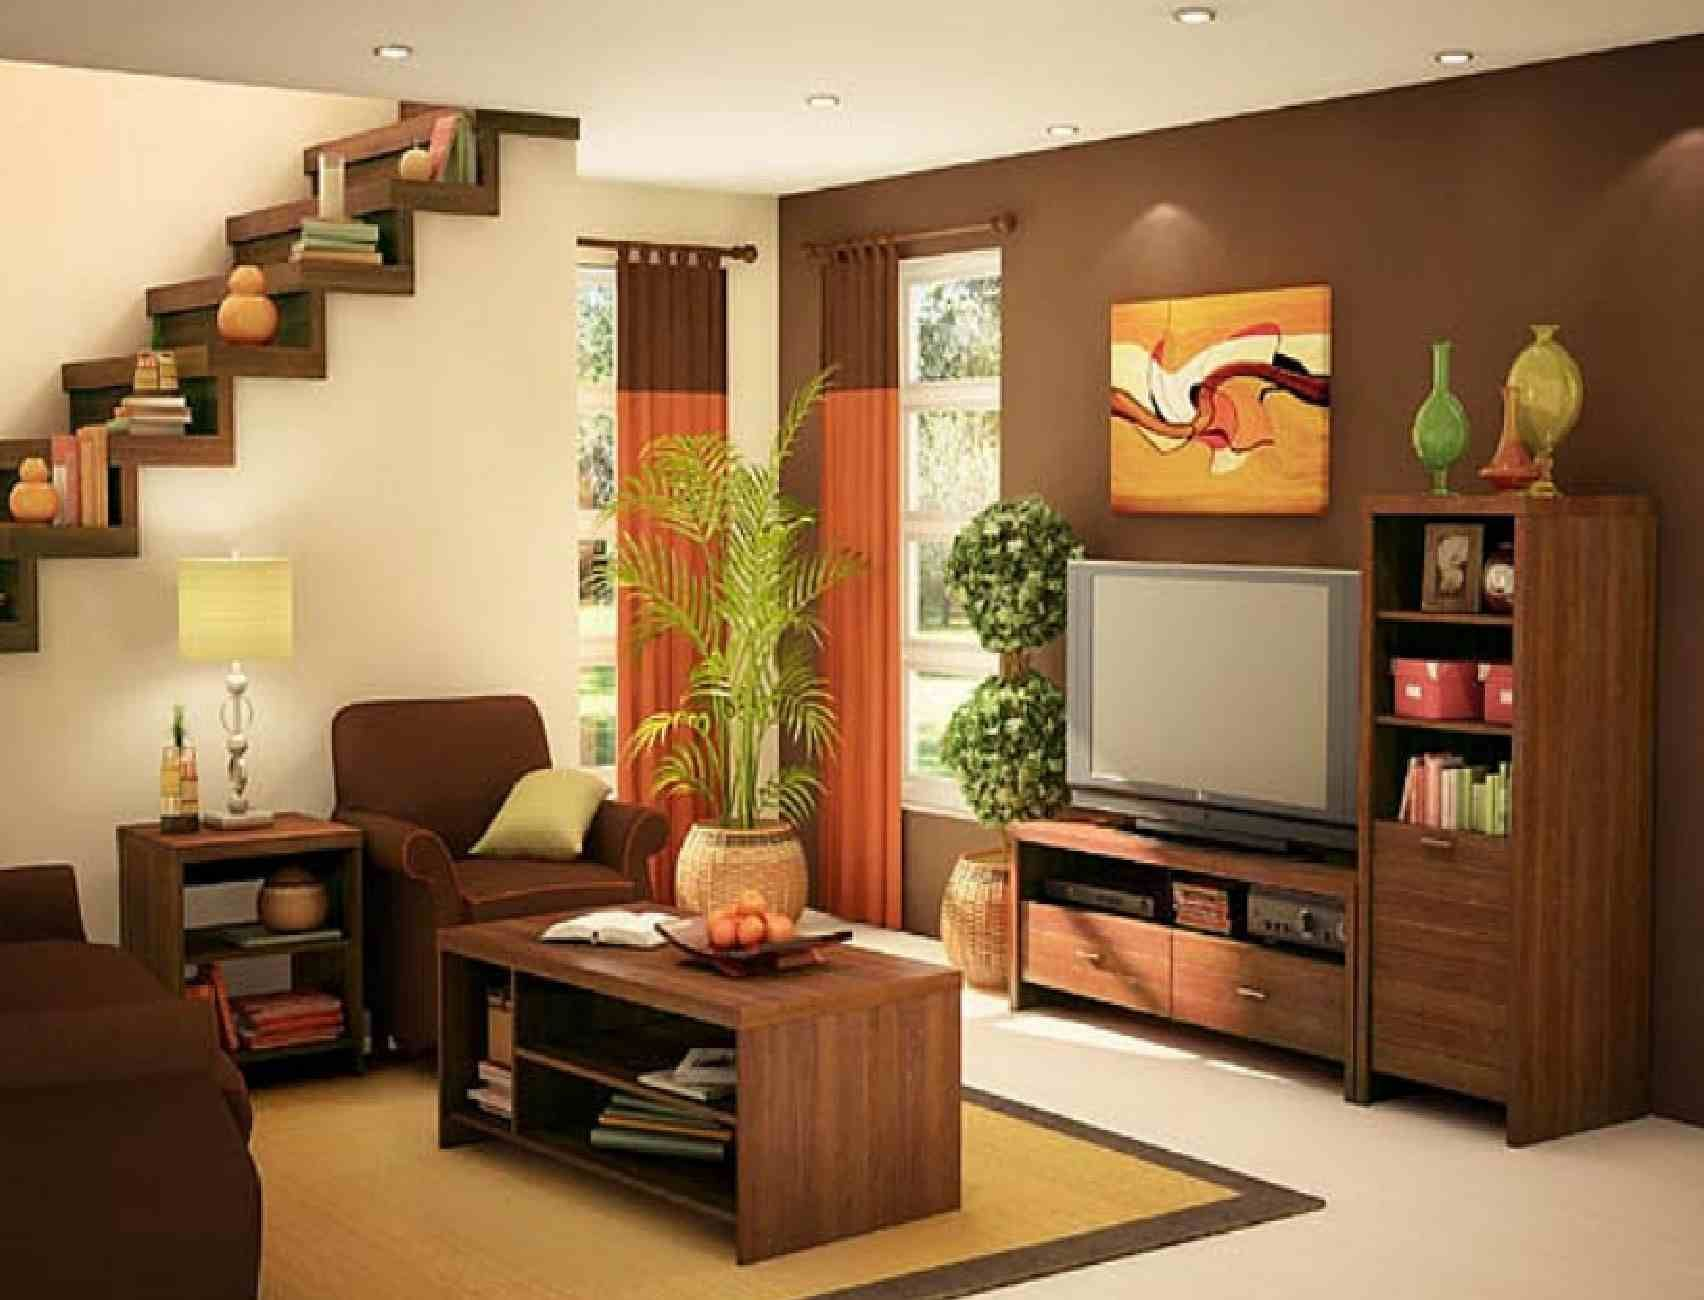 Paint Suggestions For Living Room Excellent Small Apartment Living Room Idea With Brown And Cream